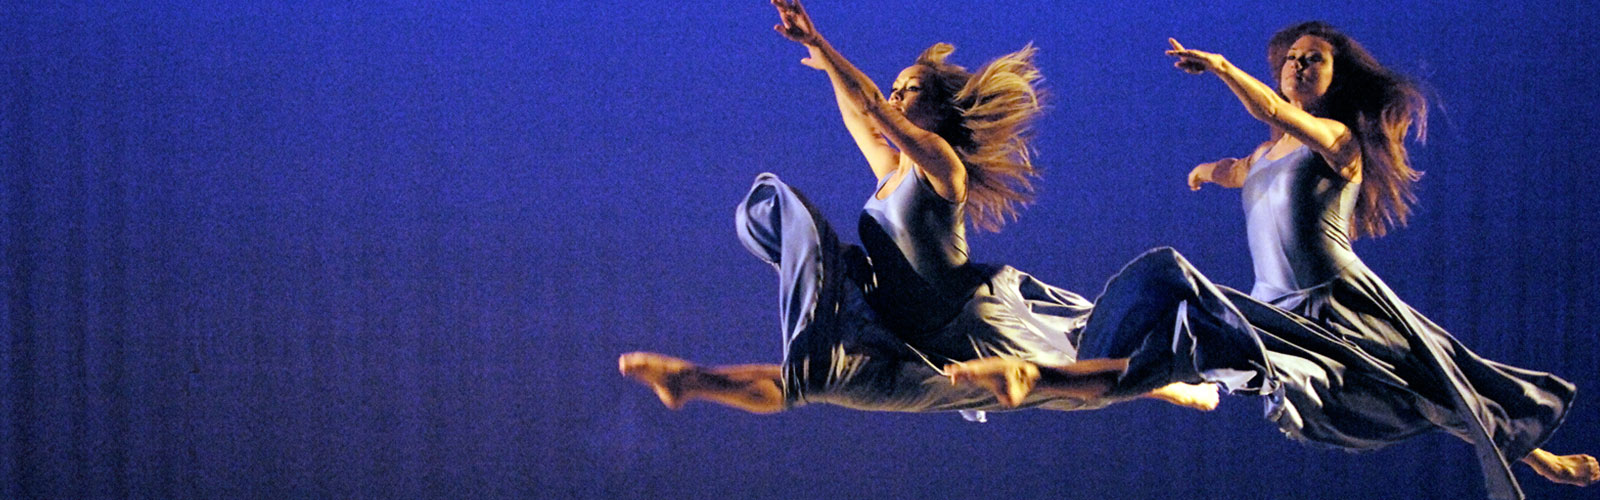 two female dancers on state in purple dresses mid split leap.